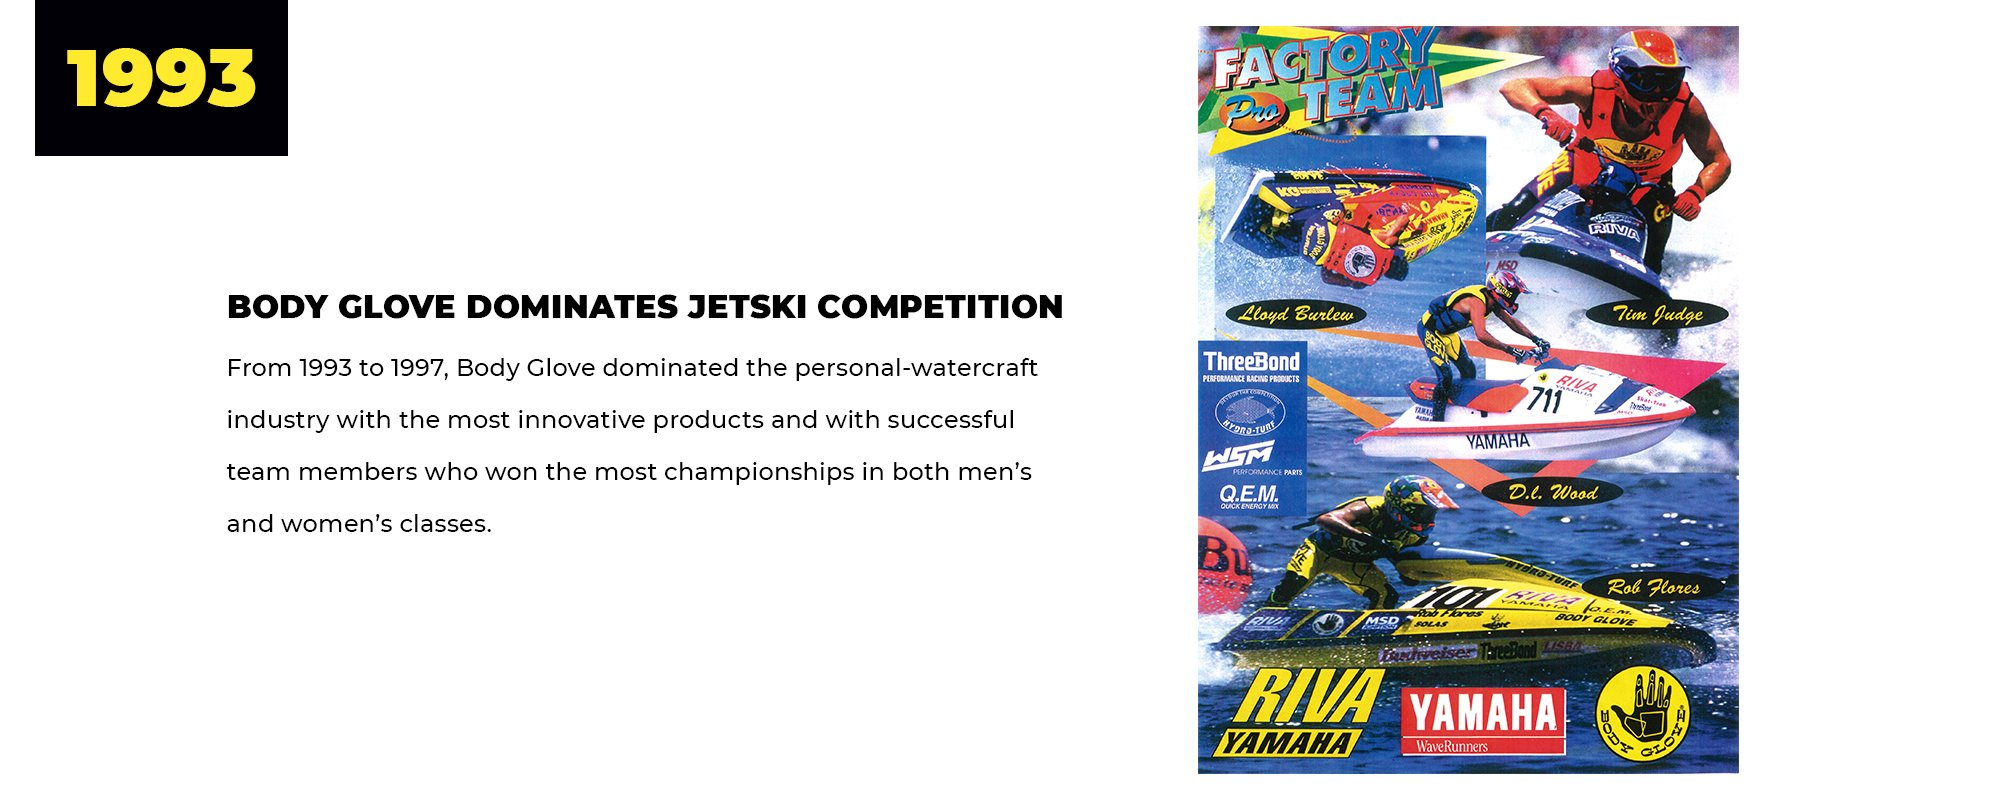 1993 | Body Glove Dominates Jetski Competition | From 1993 to 1997, Body Glove dominated the personal-watercraft industry with the most innovative products and with successful team members who won the most championships in both men's and women's classes.